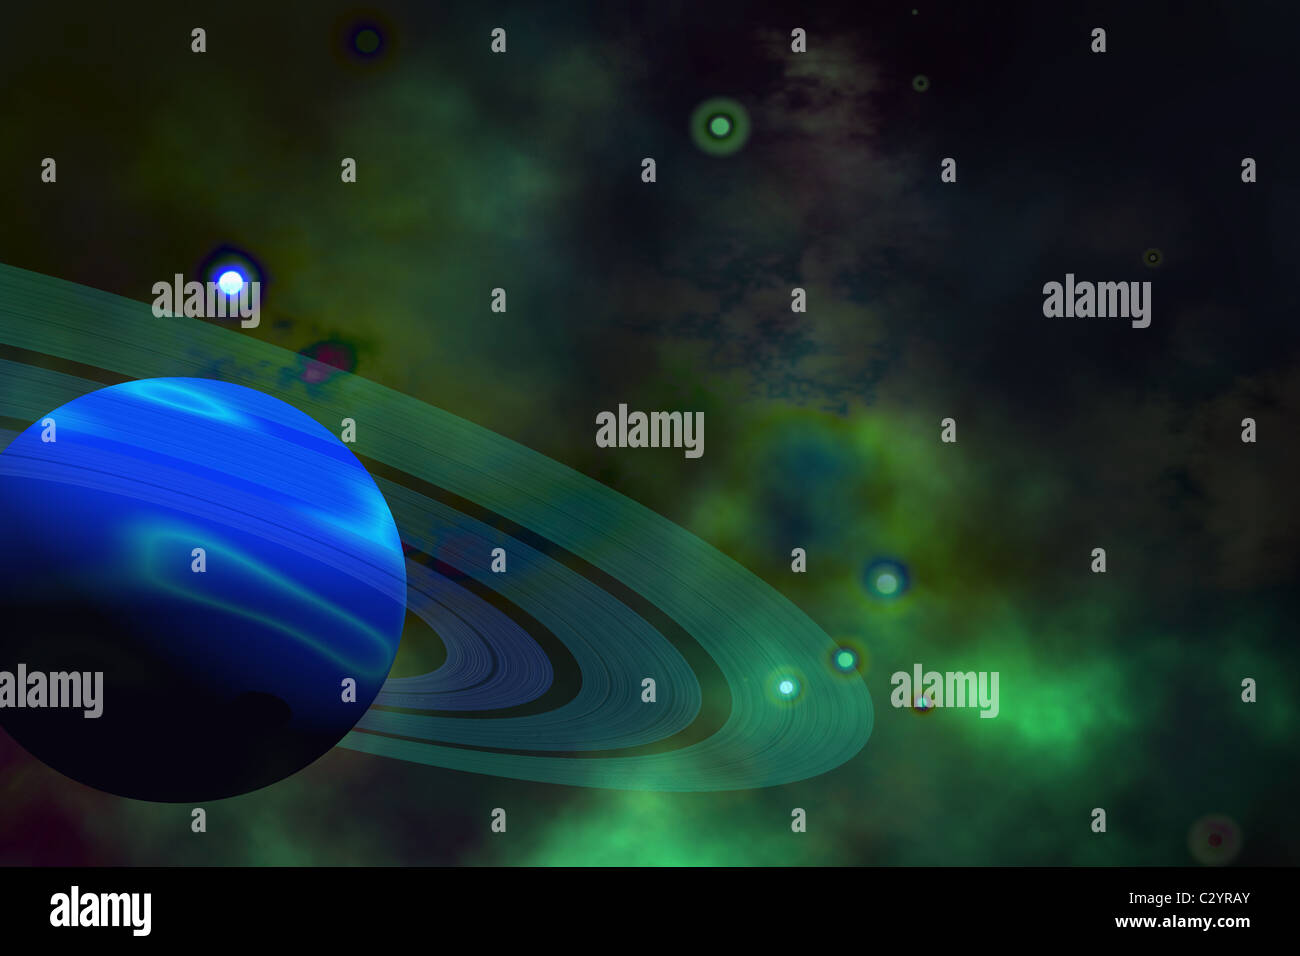 A blue ringed planet and nearby stars. - Stock Image